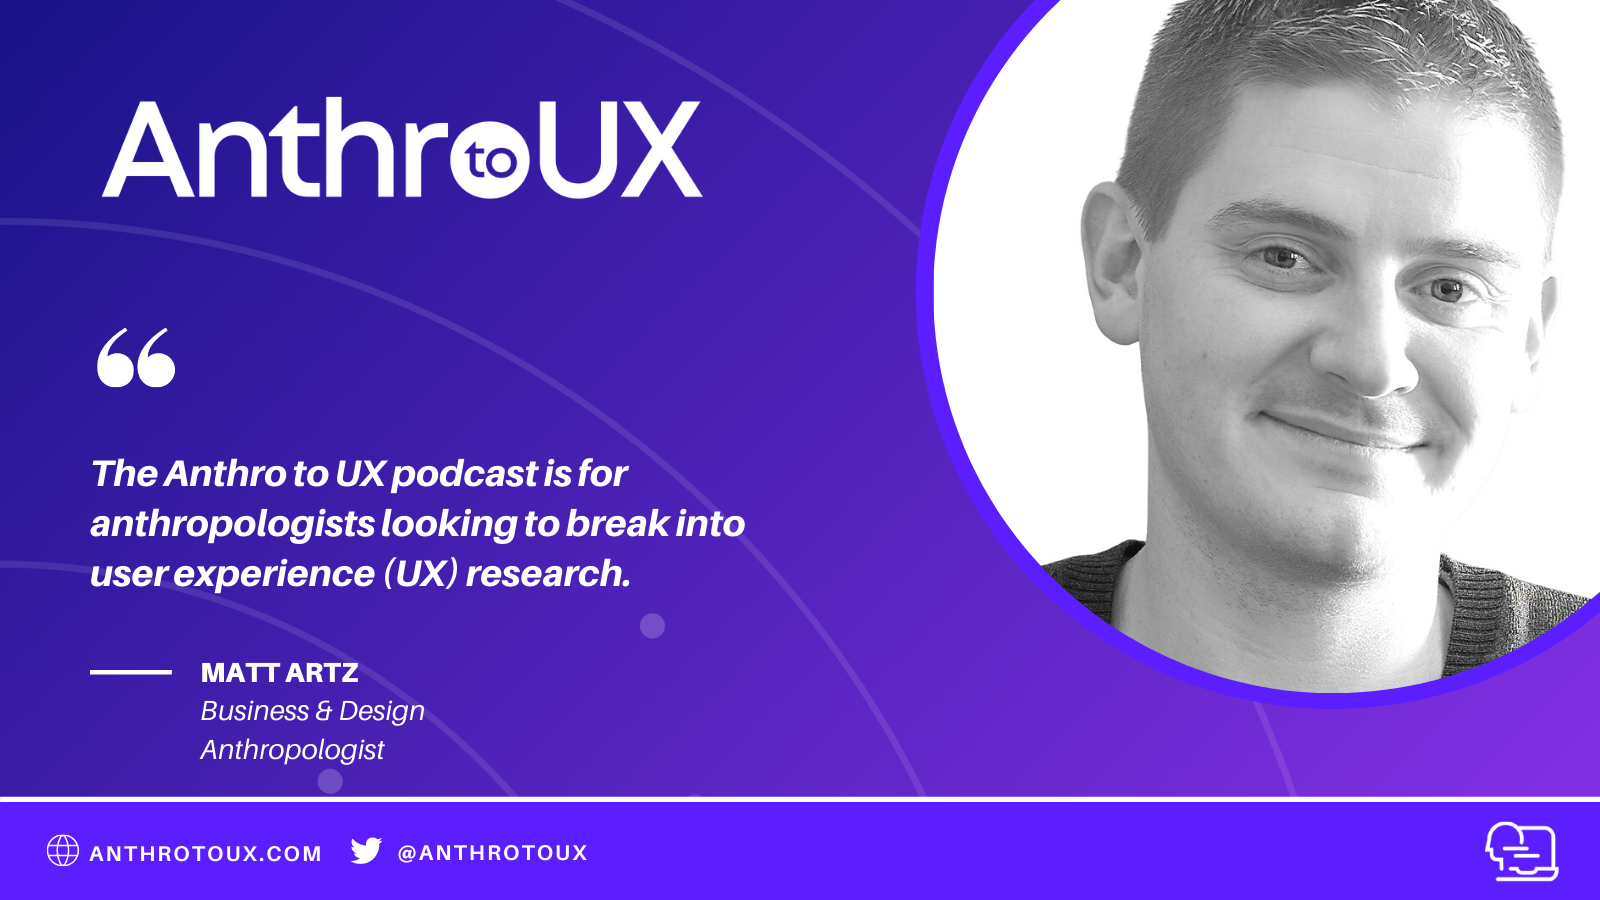 Welcome to the Anthro to UX Podcast with Matt Artz